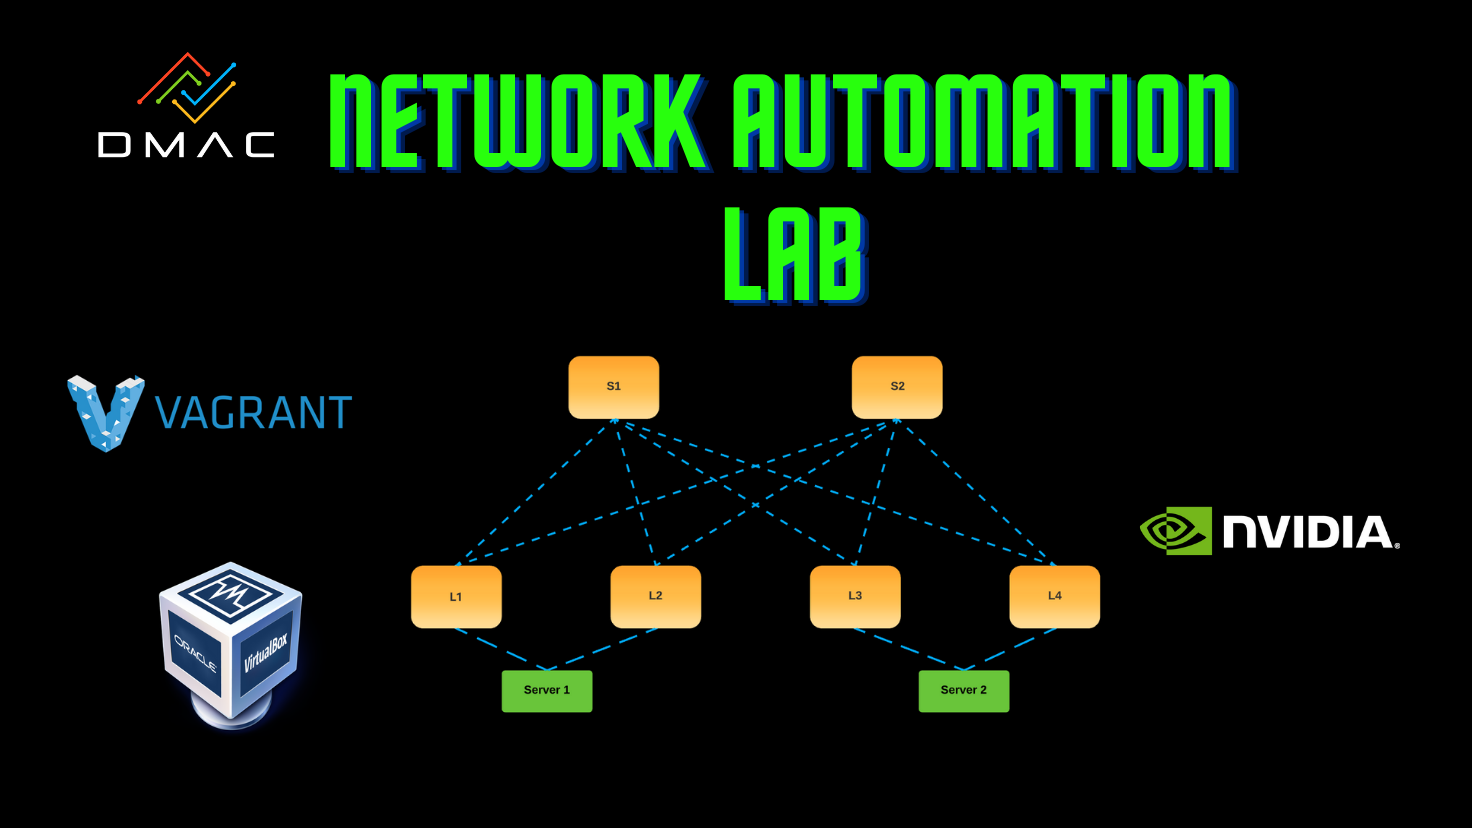 Creating our Network Automation Lab